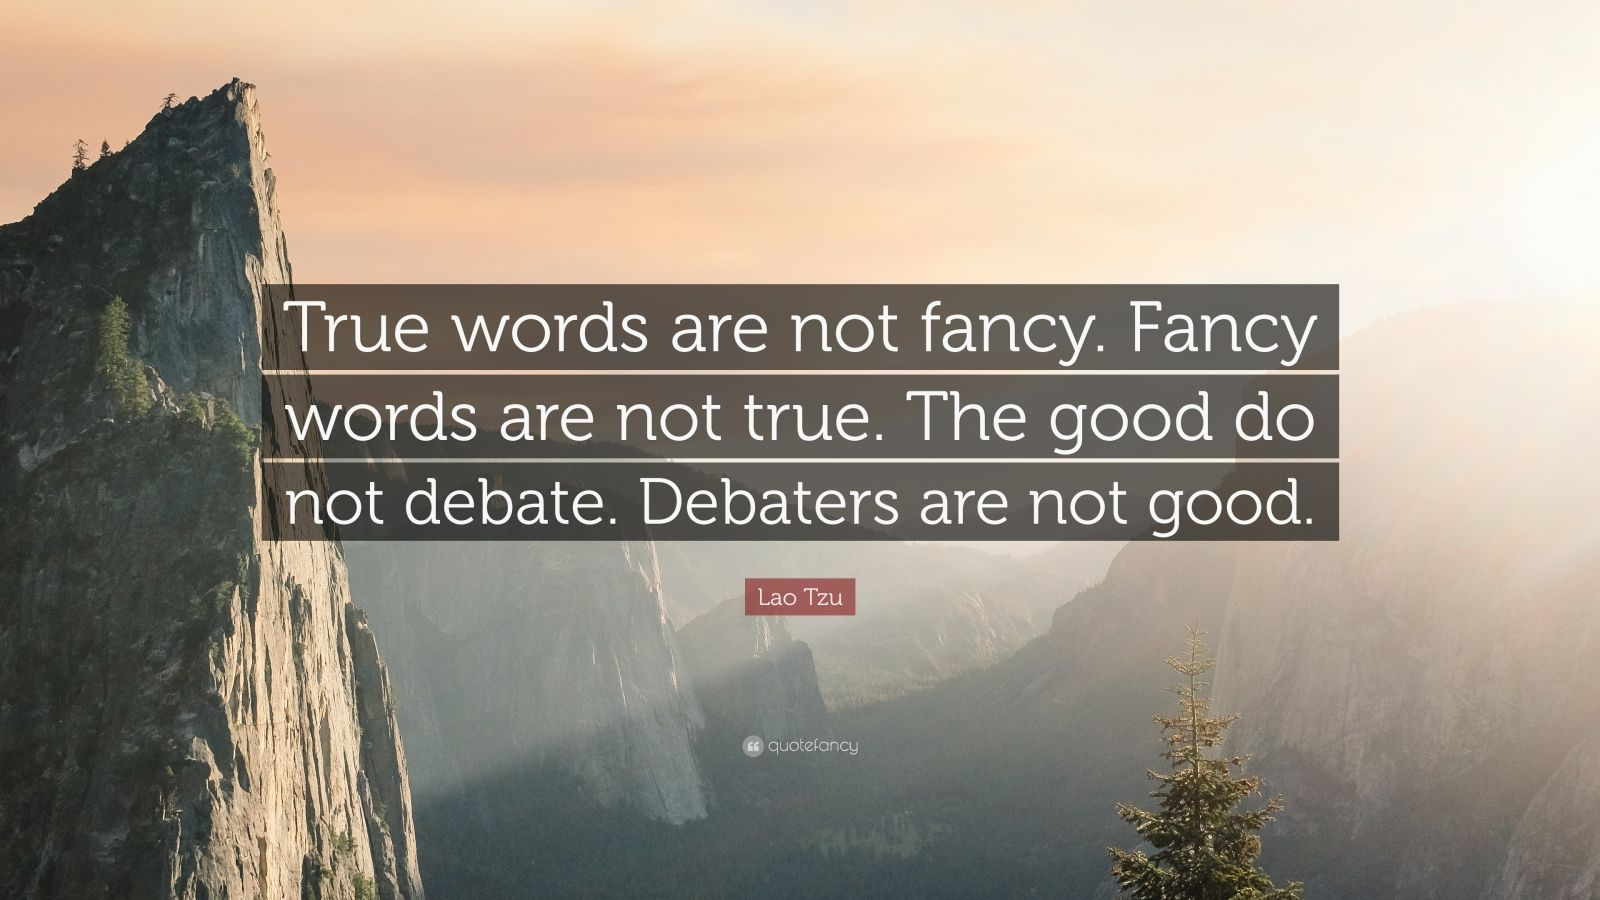 """Lao Tzu Quote: """"True words are not fancy. Fancy words are not true. The good do not debate. Debaters are not good."""""""